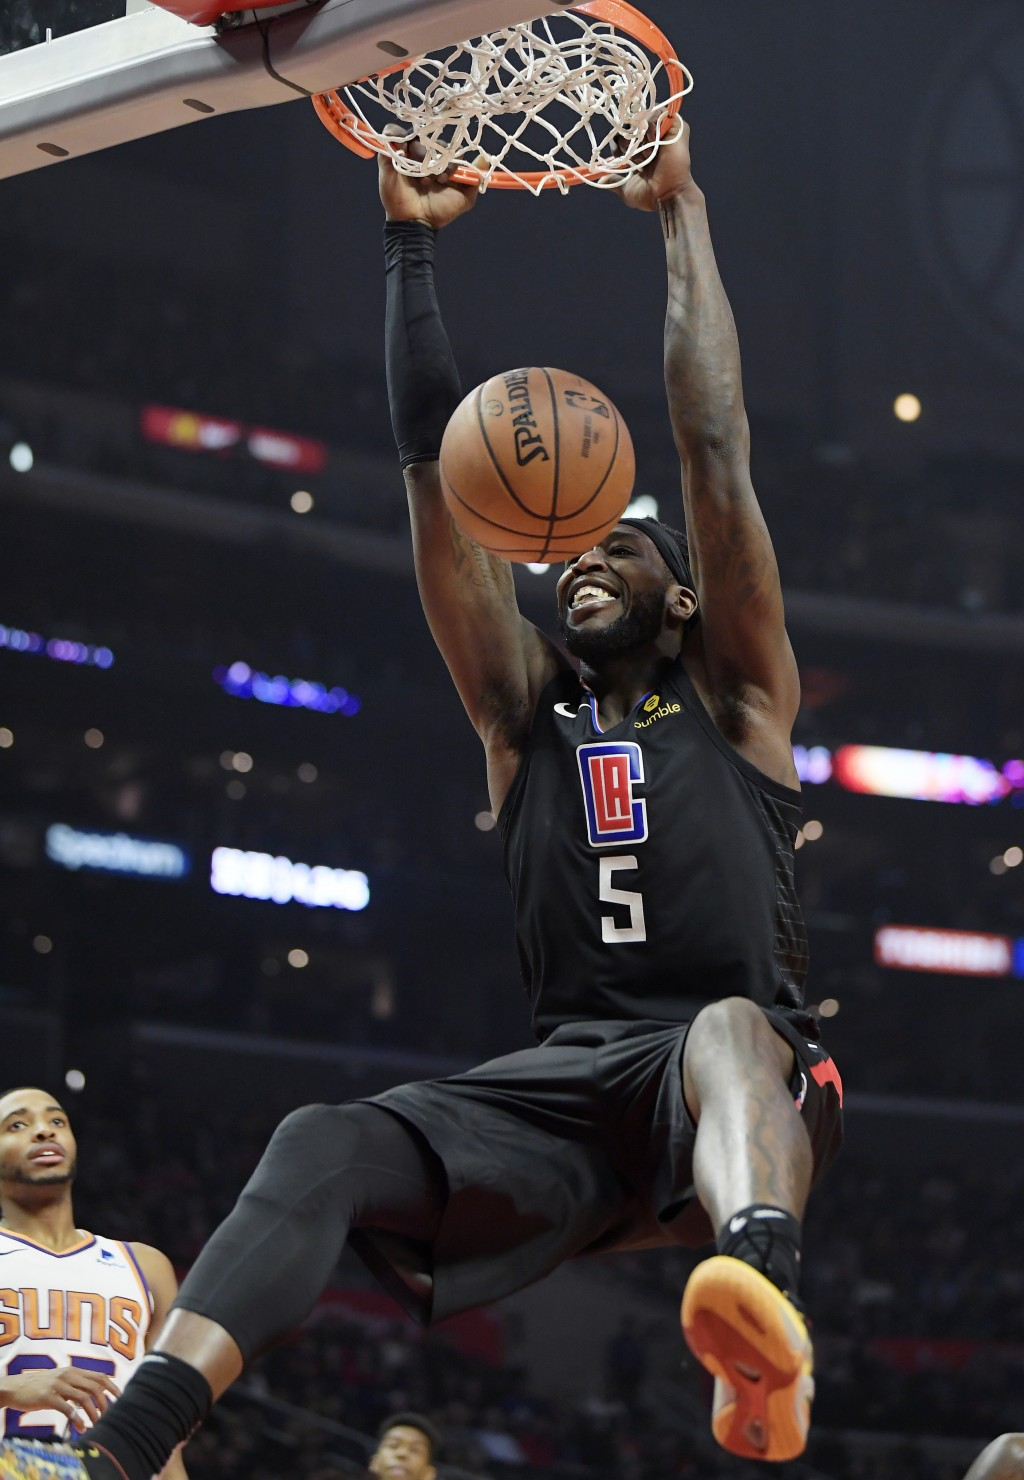 Los Angeles Clippers forward Montrezl Harrell dunks as Phoenix Suns forward Mikal Bridges watches during the first half of an NBA basketball game Wedn